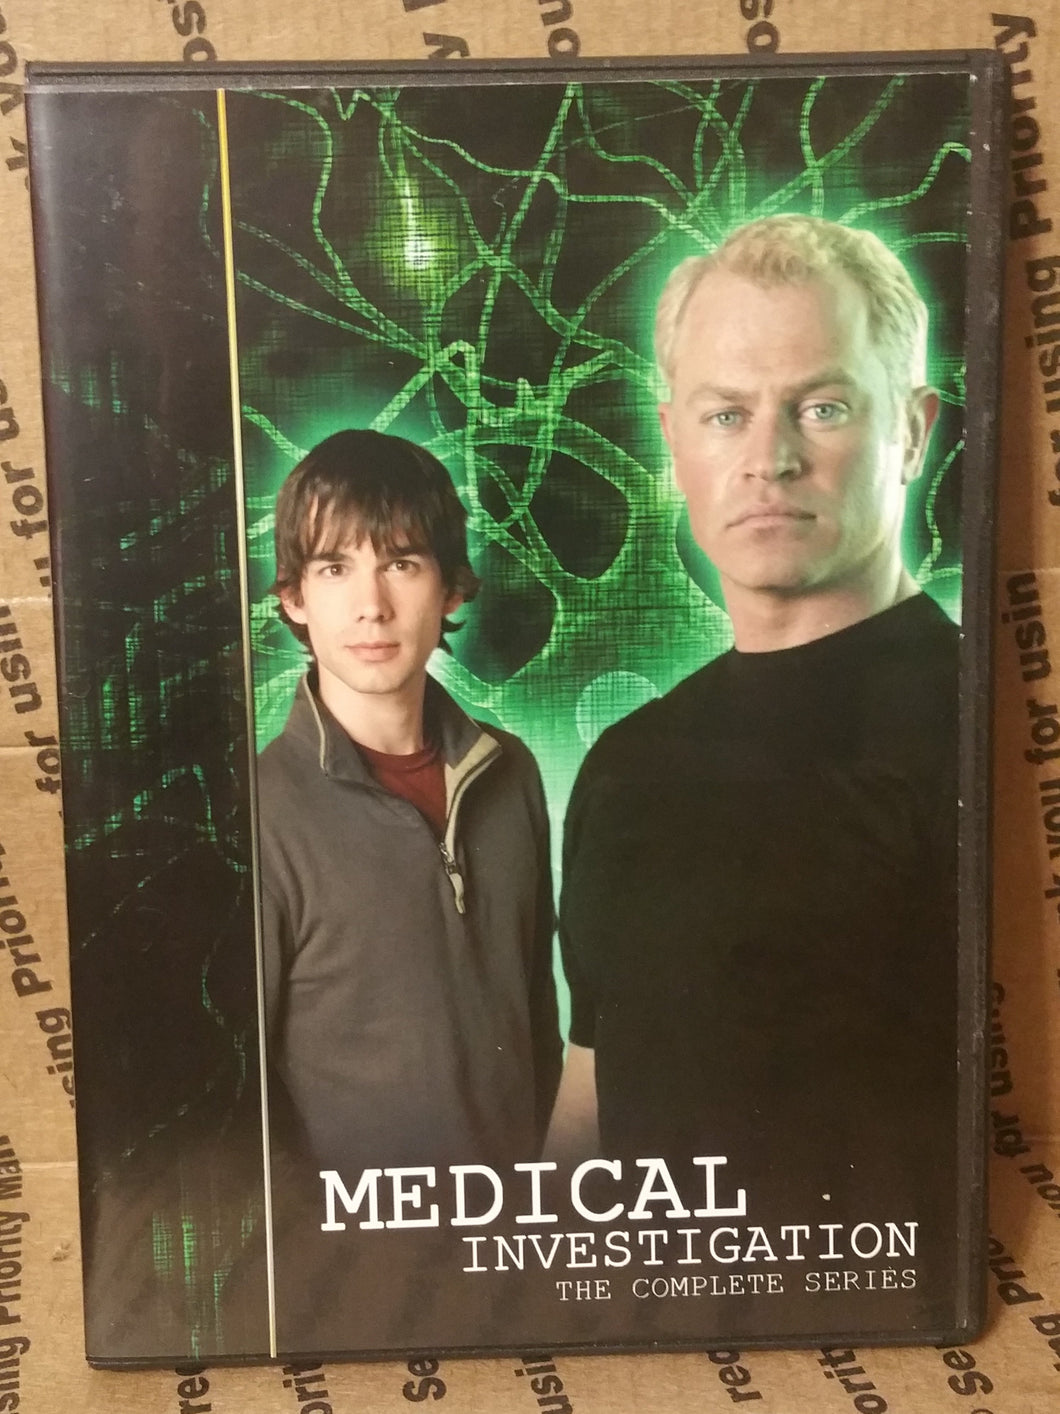 Medical Investigation 2004 THE COMPLETE TV SERIES ON DVD Neal McDonough Kelli Williams Christopher